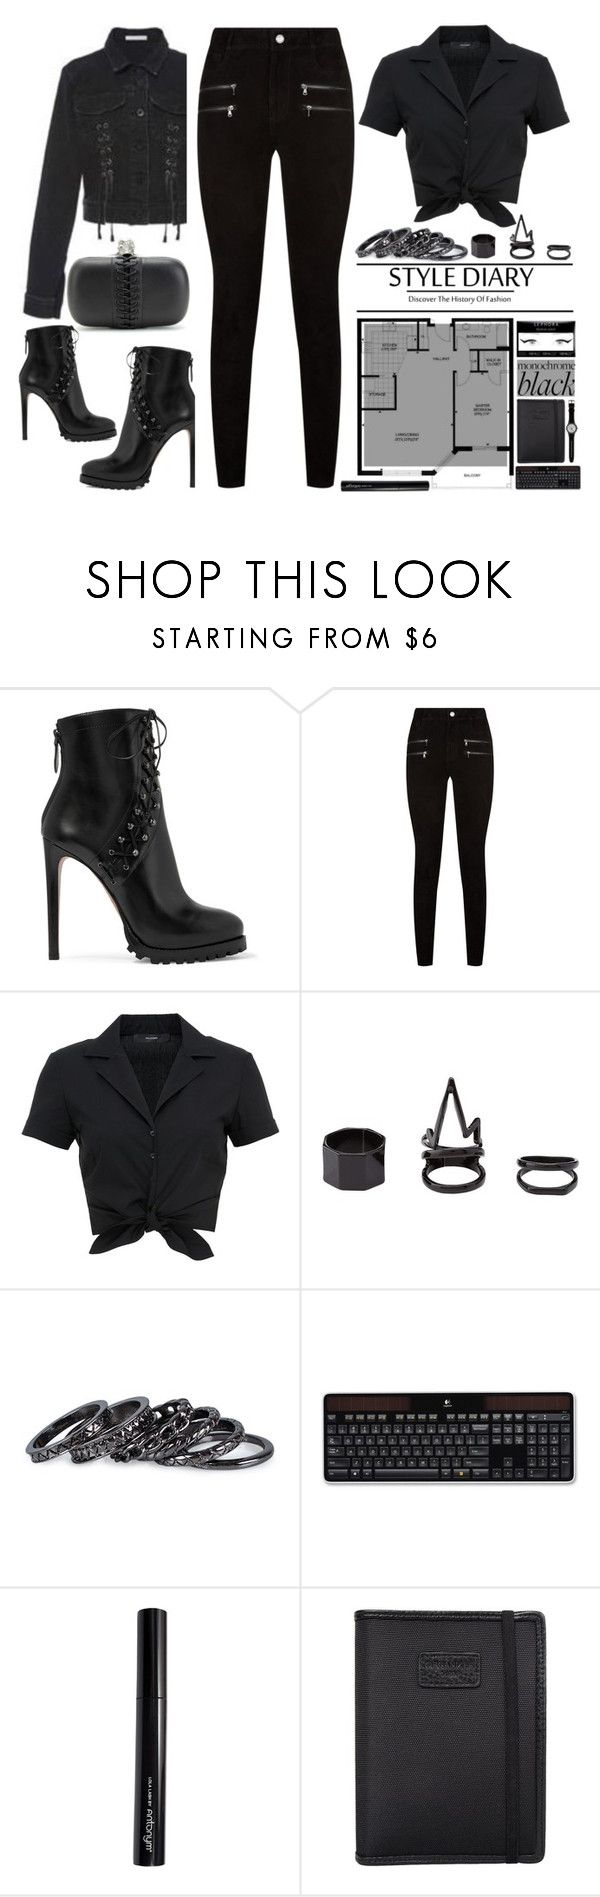 """Monochrome:All Black Everything"" by emcf3548 ❤ liked on Polyvore featuring Alaïa, Paige Denim, Hallhuber, Charlotte Russe, Pieces, Logitech, Antonym, Nava, Swatch and allblack"